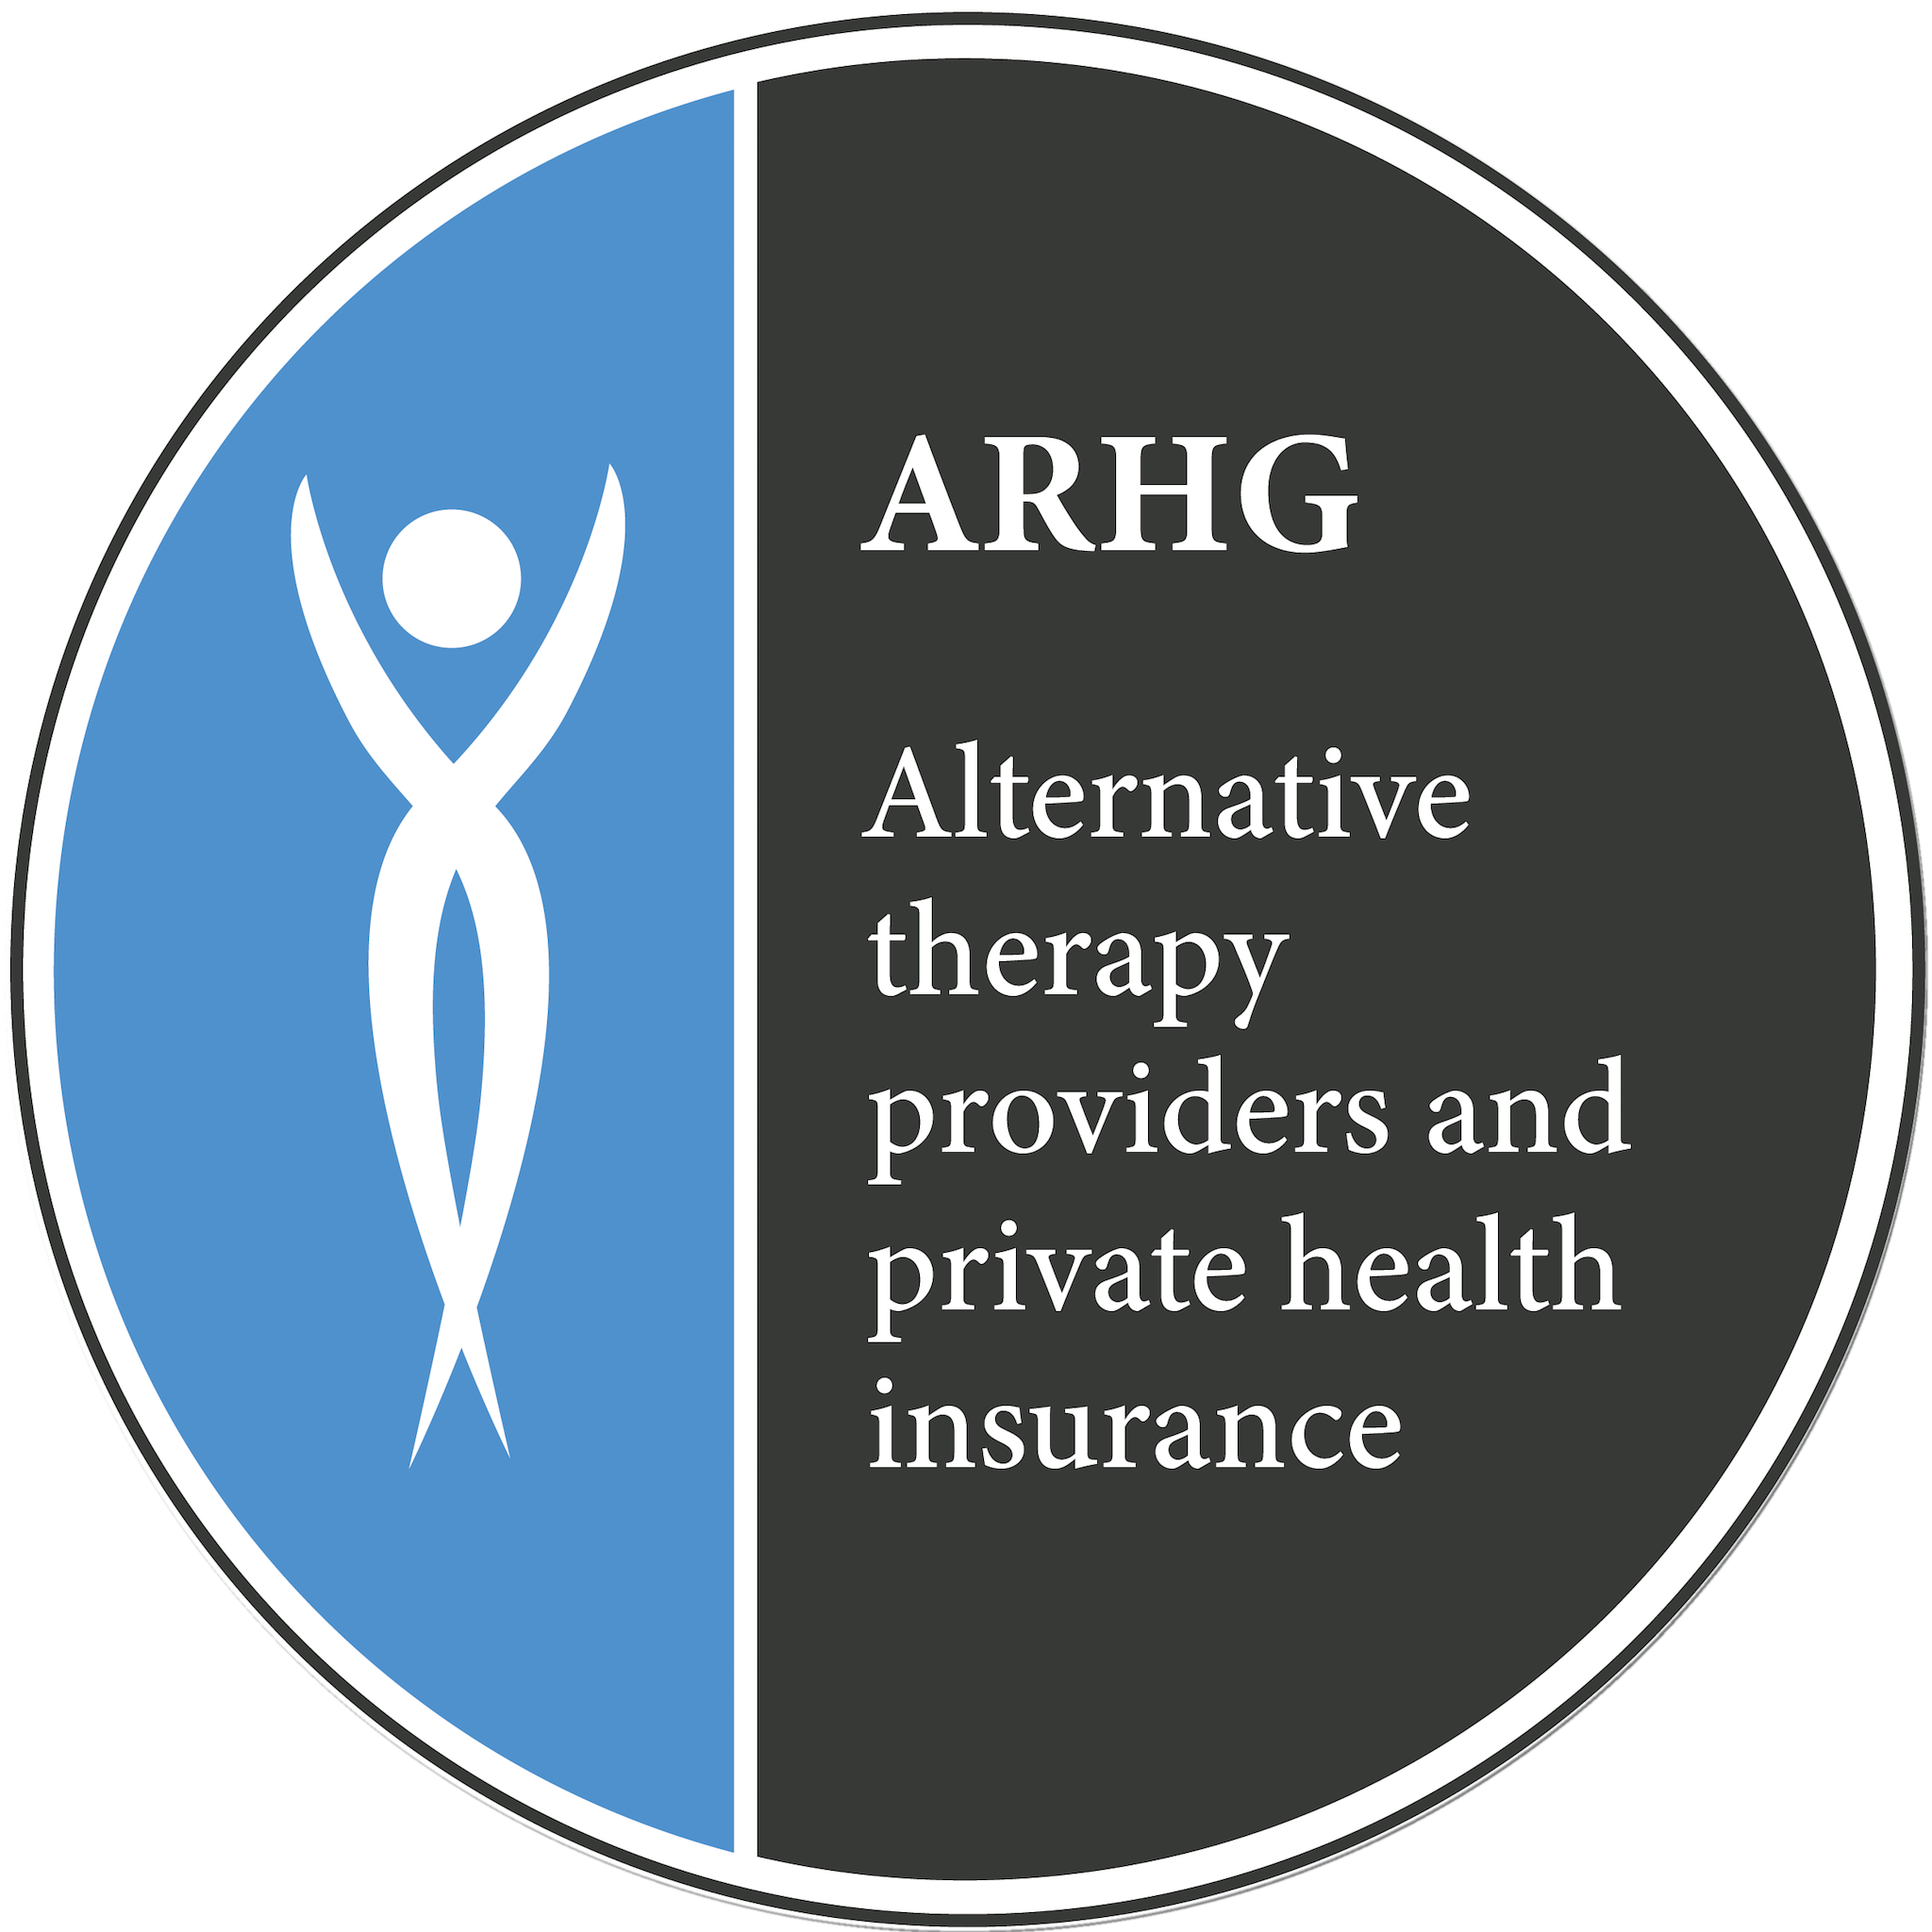 Alternative therapy providers and private health insurance